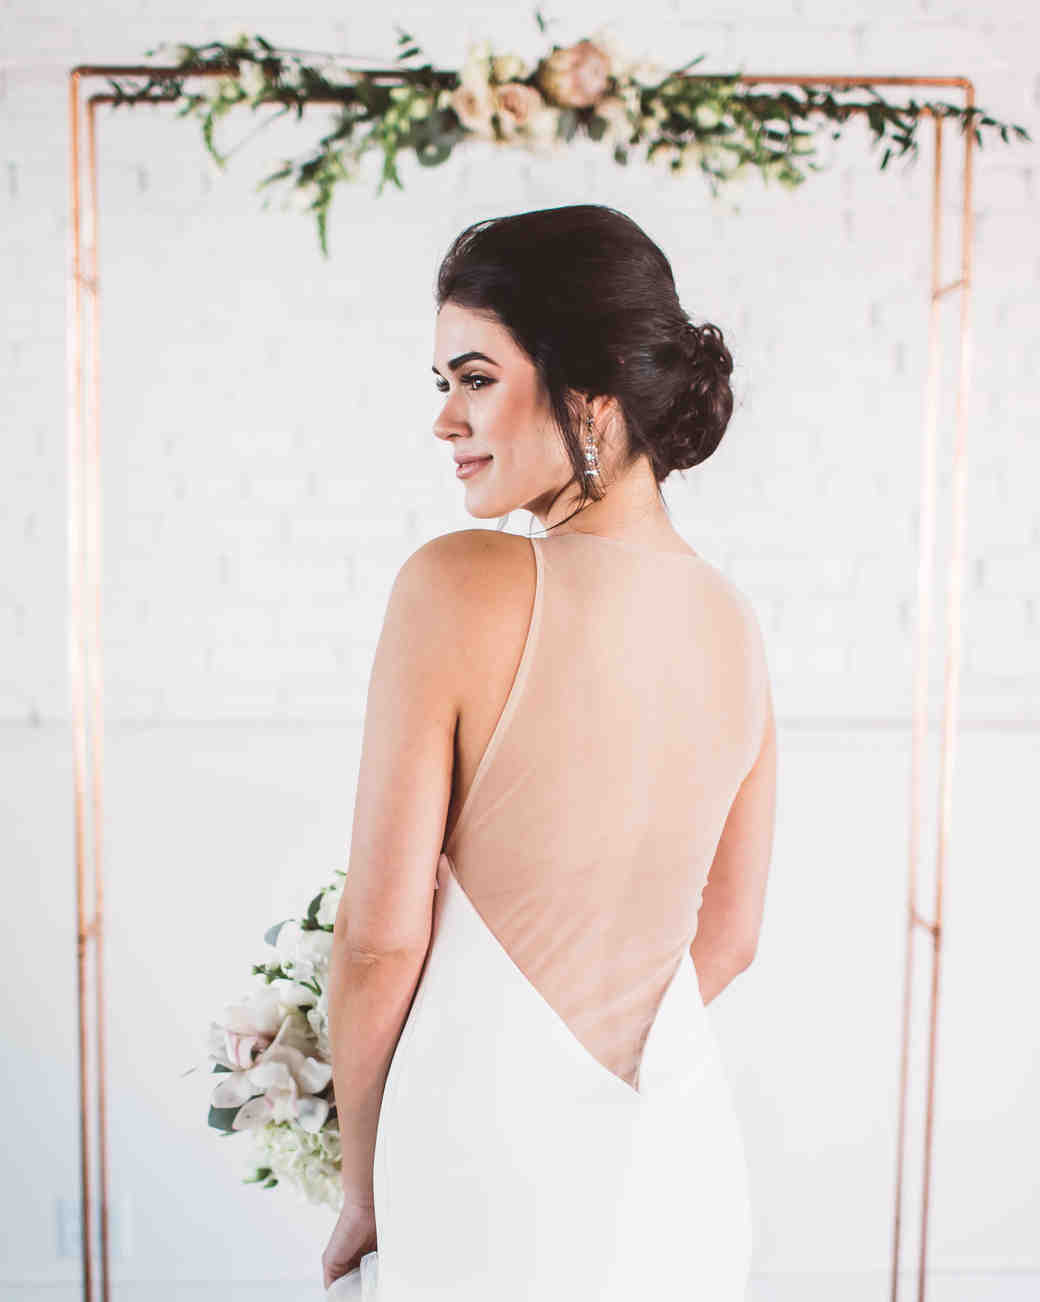 rose gold wedding ideas bride beneath metallic arch